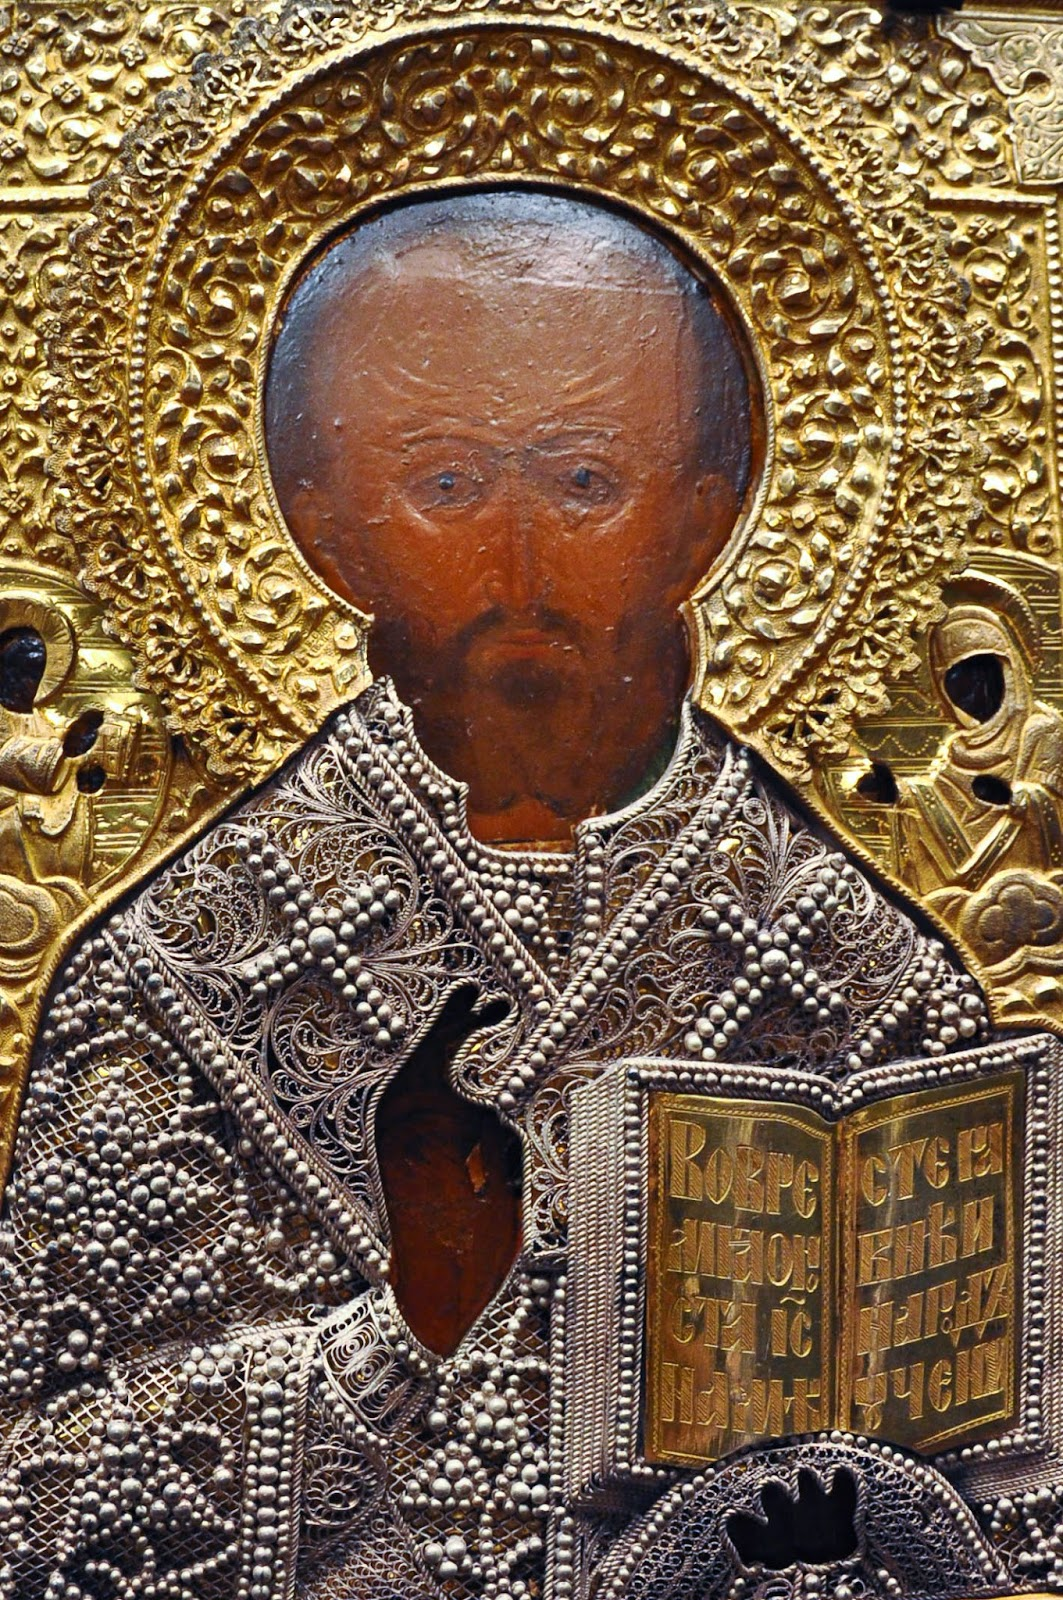 A Russian icon with an embossed metal and filigree covering, Gallerie d'Italia, Palazzo Leoni Montanari, Vicenza, Italia